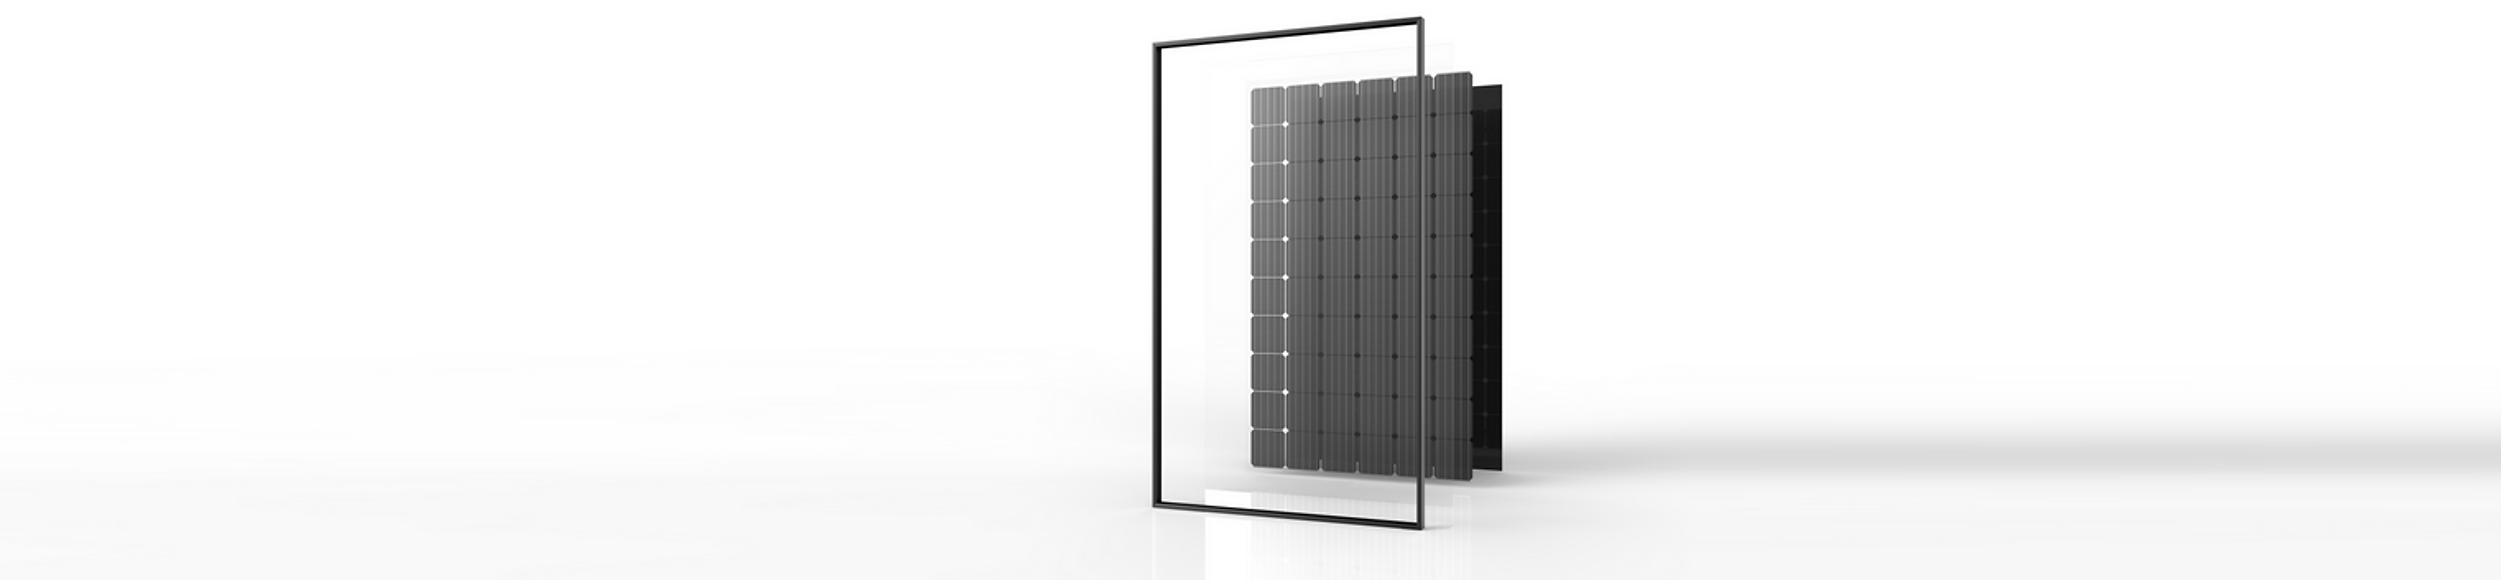 pannello fotovoltaico made in italy